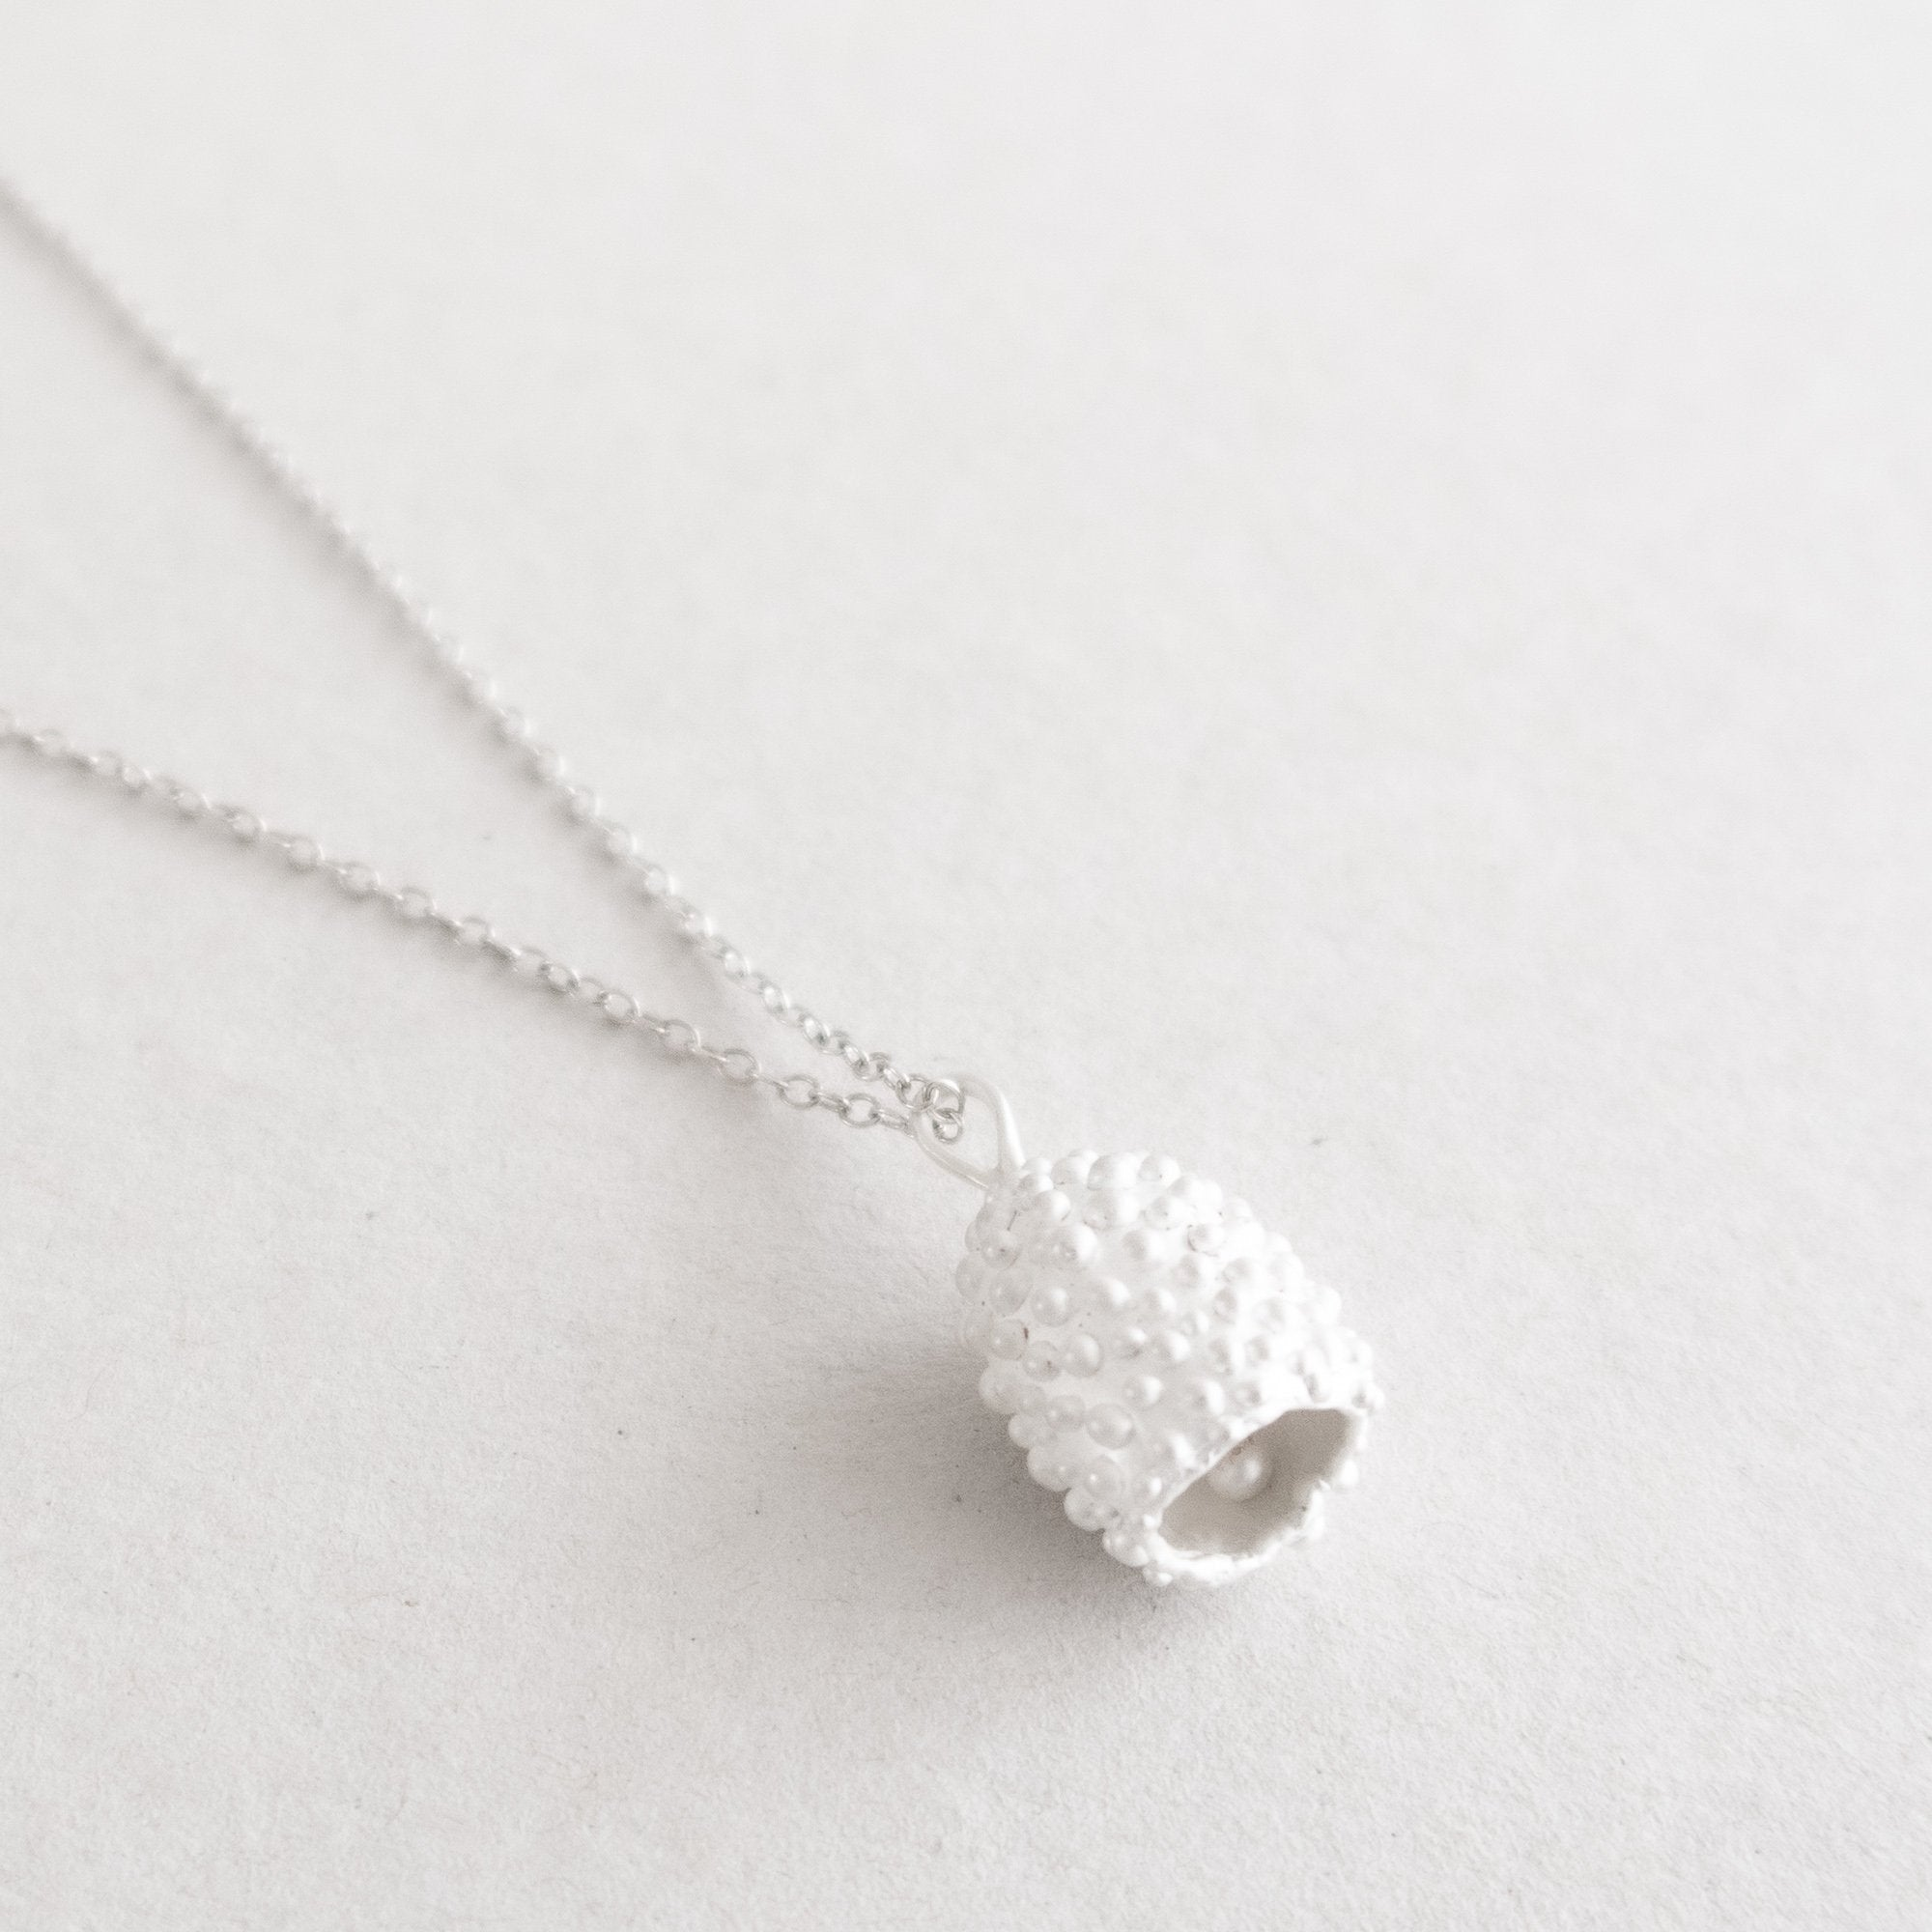 silver dotted bell on chain necklace